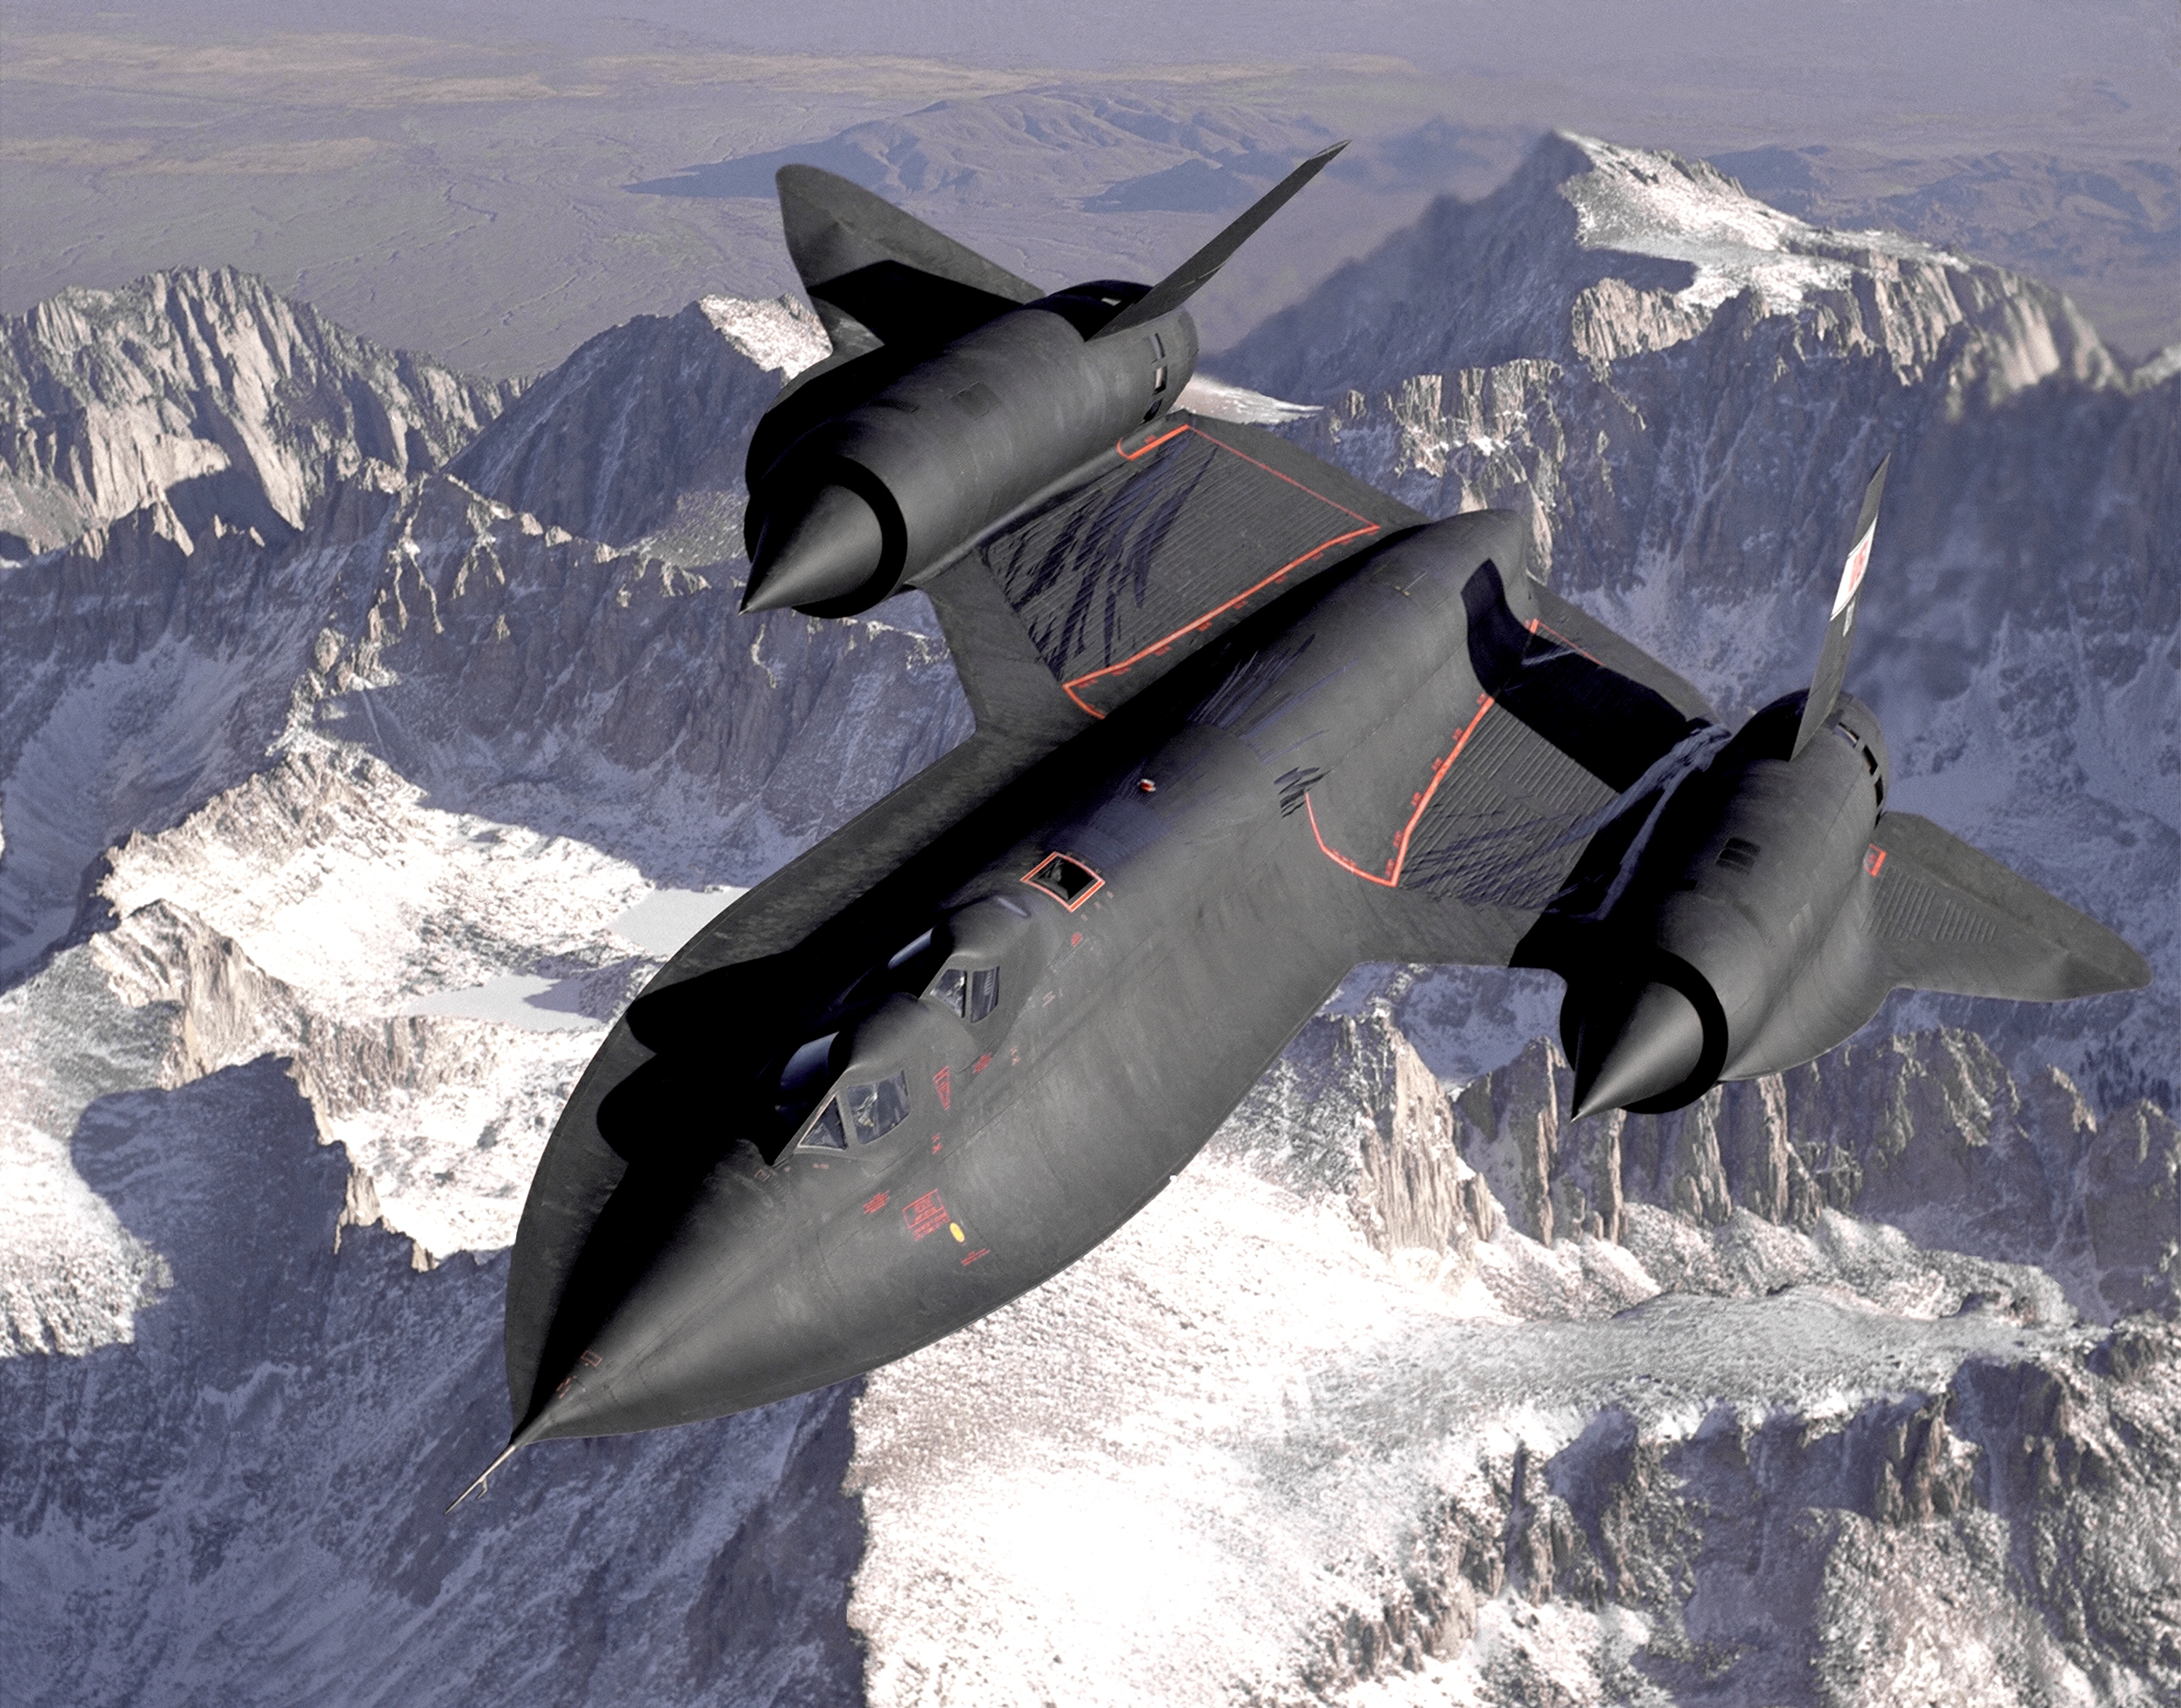 ' ' from the web at 'http://iliketowastemytime.com/sites/default/files/sr71_blackbird_leaking_fuel_cell19.jpg'